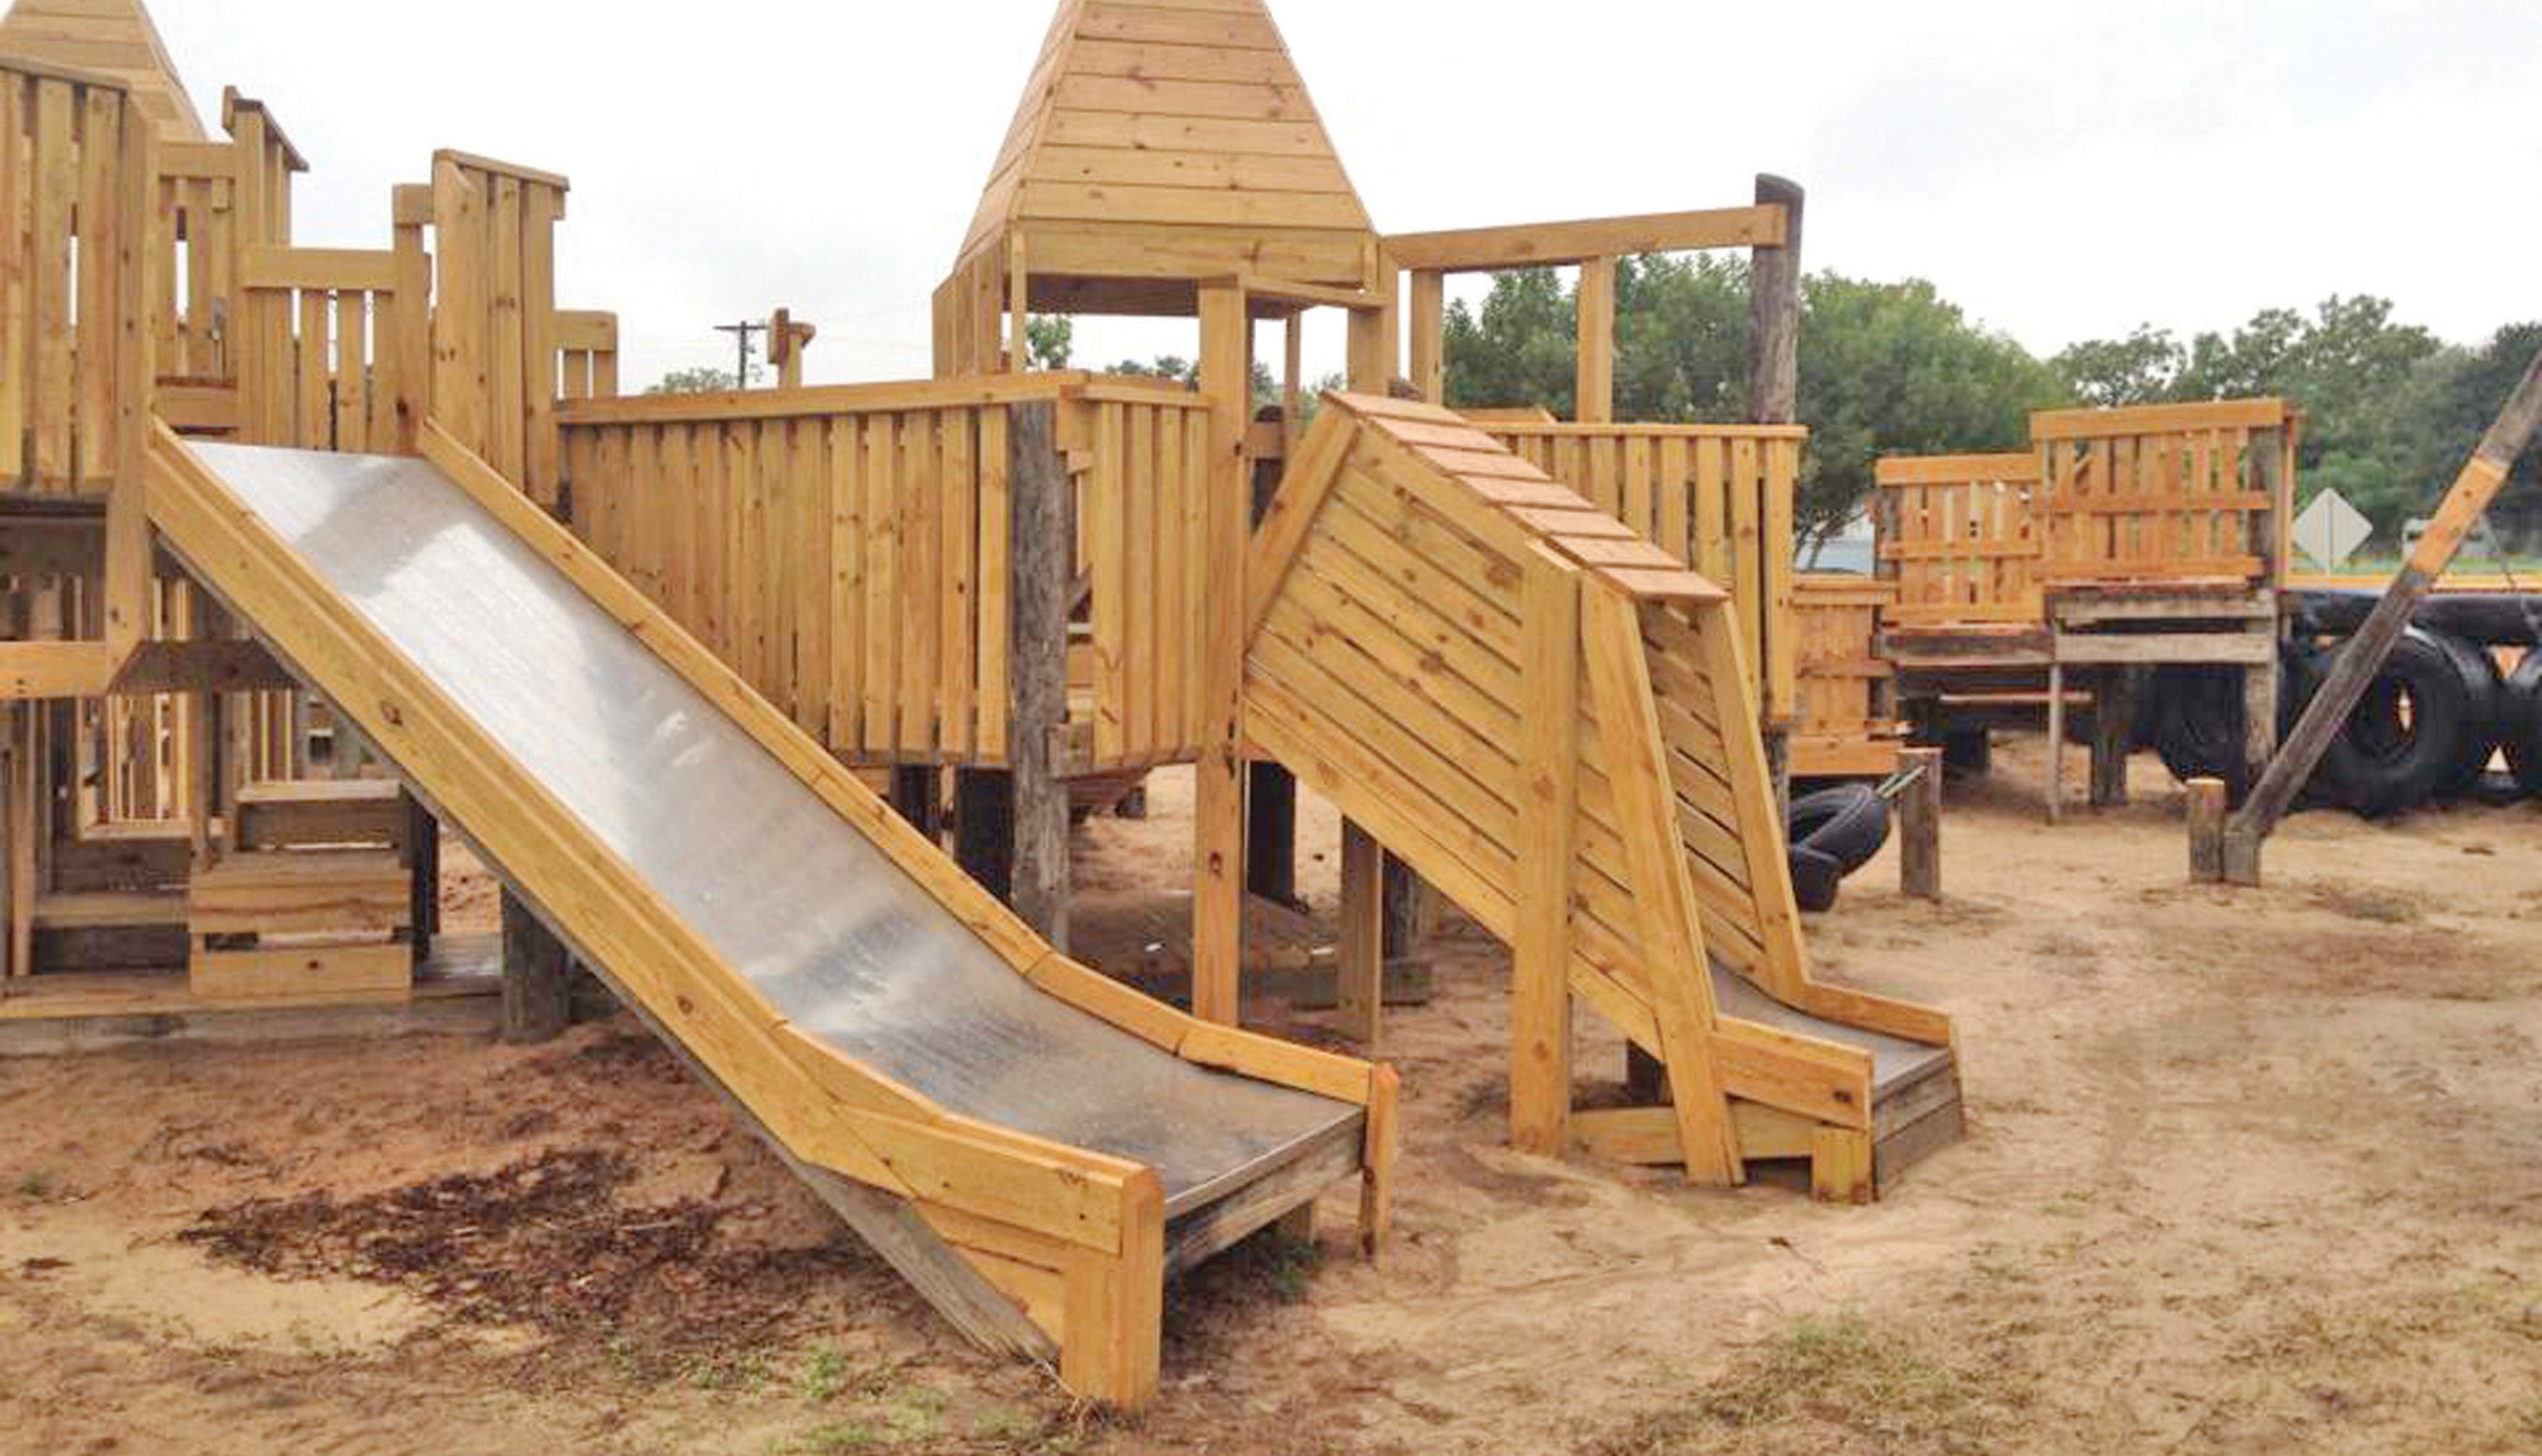 The recent repair of the Atascosa River Park is now complete. The renovations for the 27 year old playscape started at the beginning of the summer. Come enjoy the playground from 5am to 11pm seven days a week.